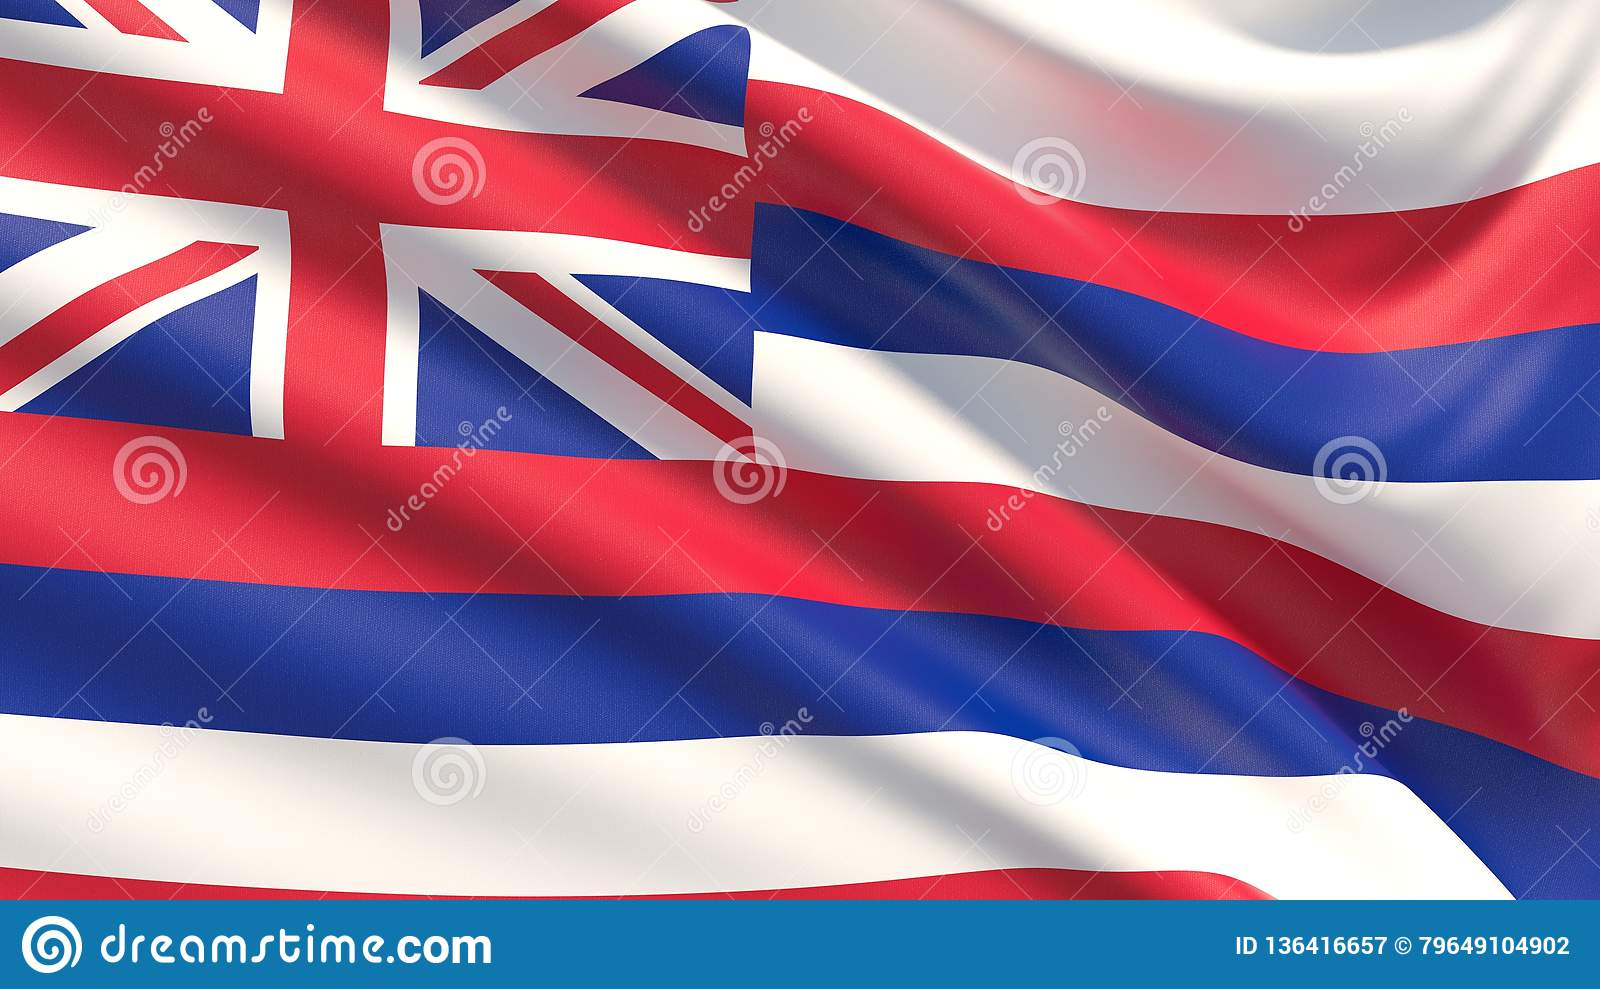 State of Hawaii flag. Flags of the states of USA.